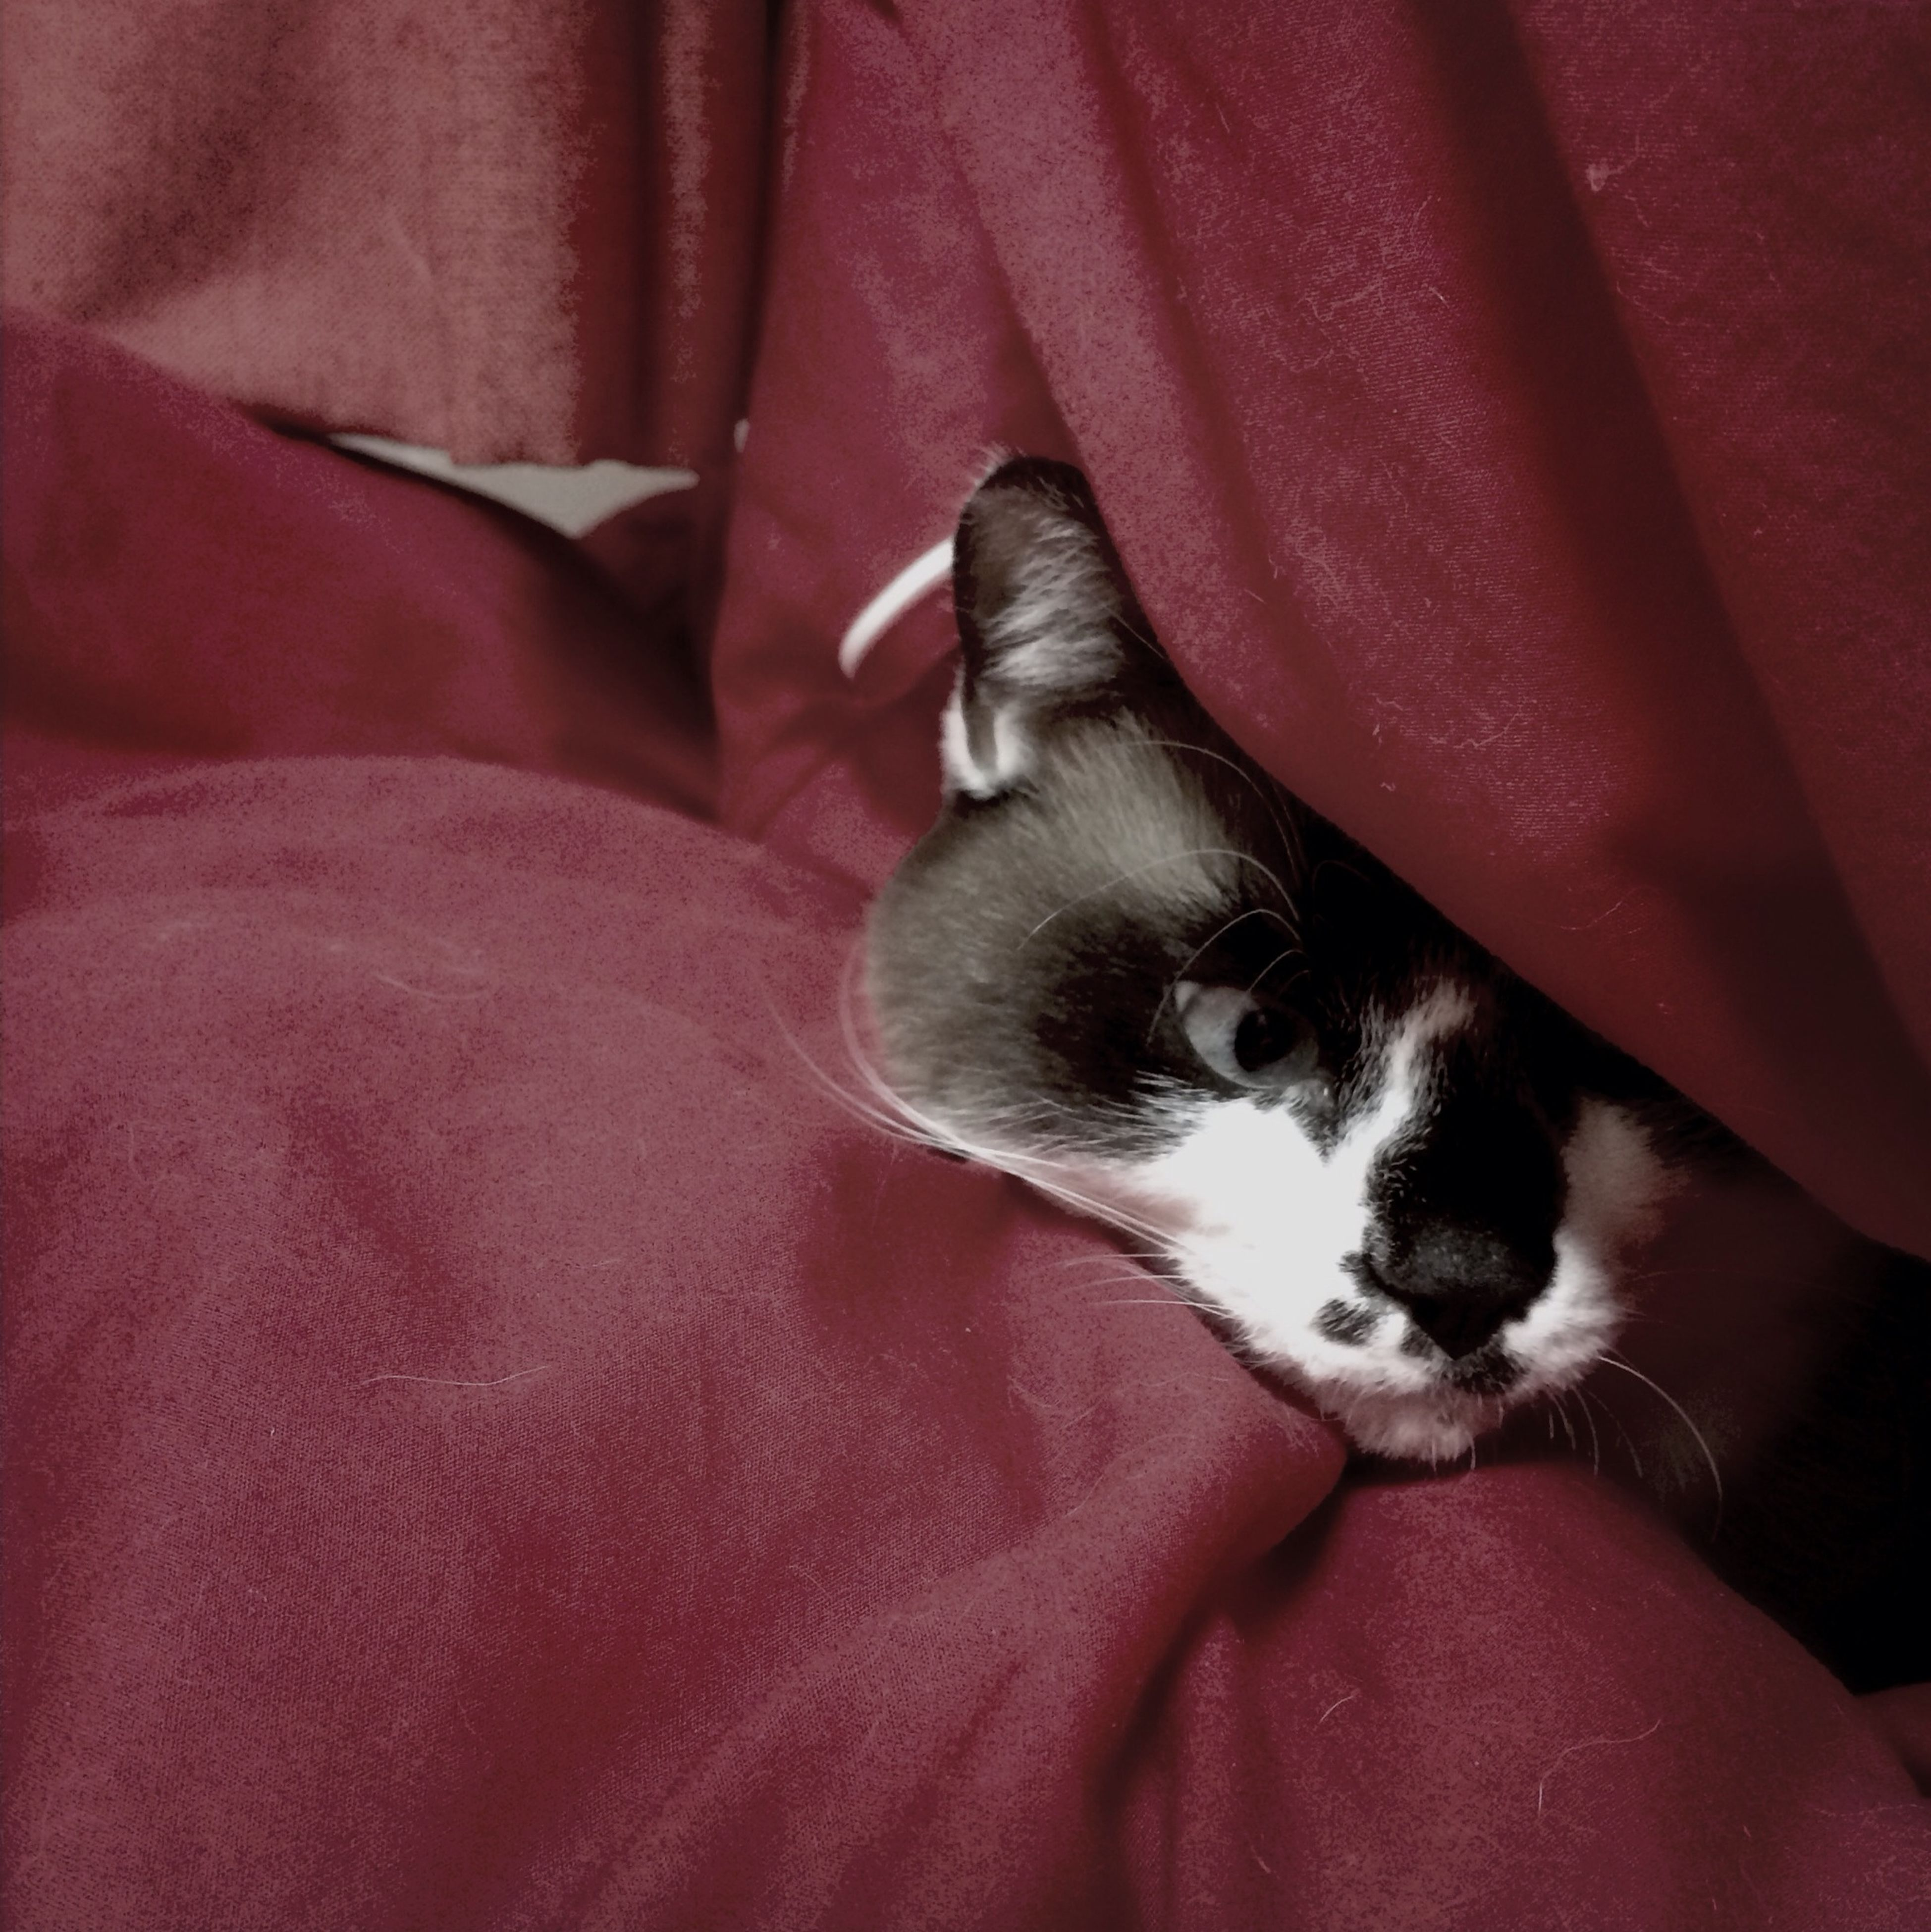 pets, domestic animals, one animal, animal themes, mammal, indoors, relaxation, domestic cat, resting, dog, cat, lying down, bed, sleeping, feline, comfortable, sofa, home interior, one person, blanket